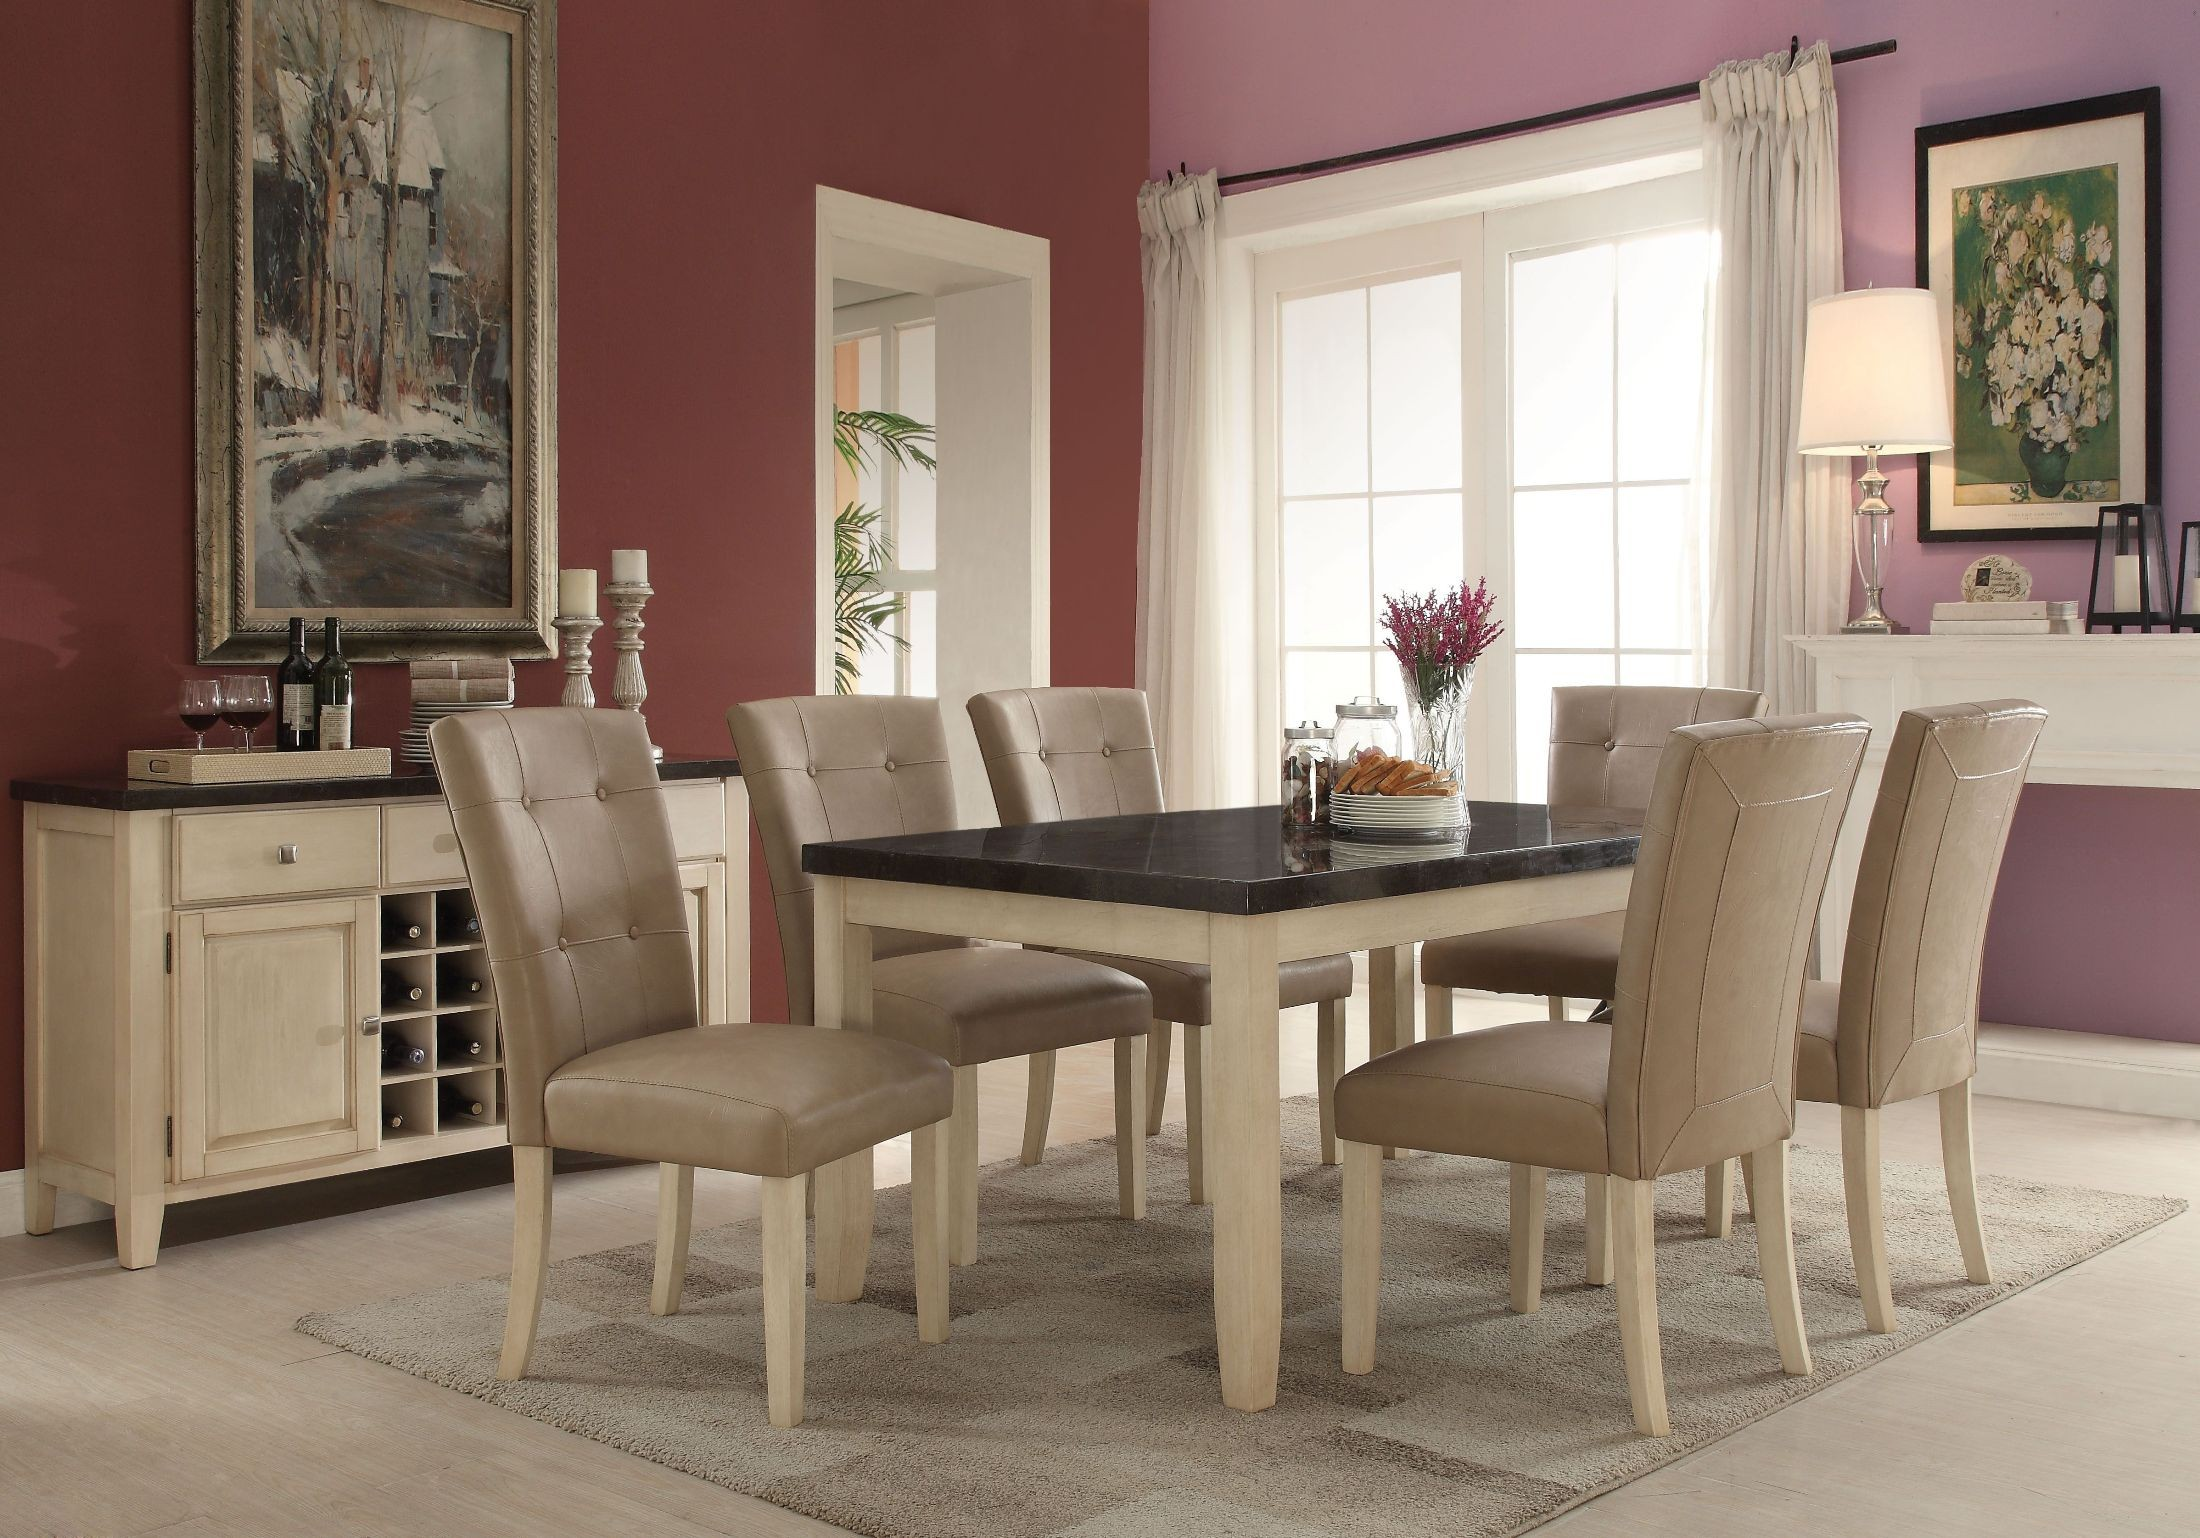 Faymoor Limestone Marble and Antique White Counter Height Dining Room Set